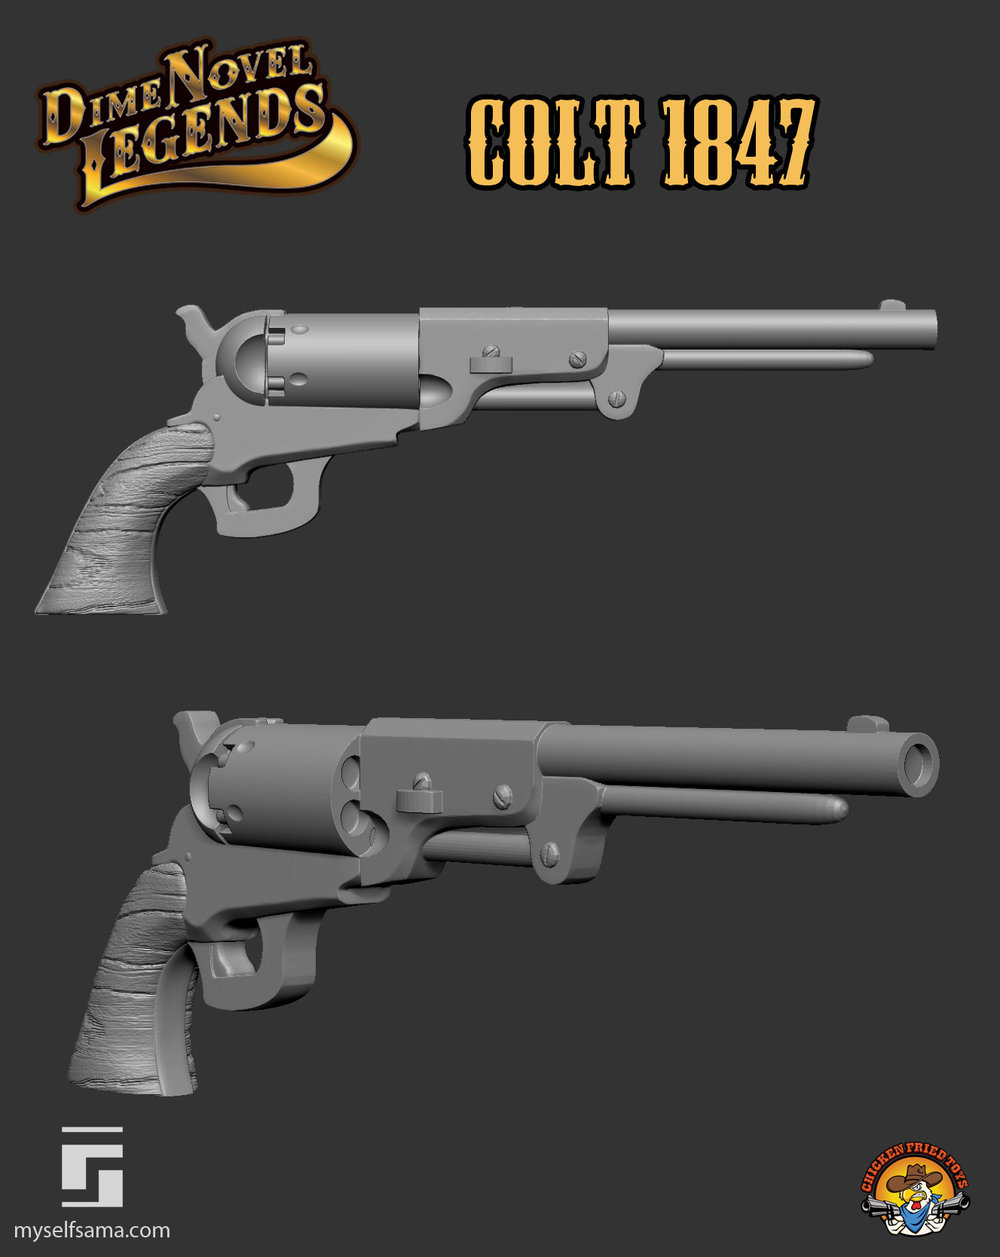 Weapons-Colt1847.jpg